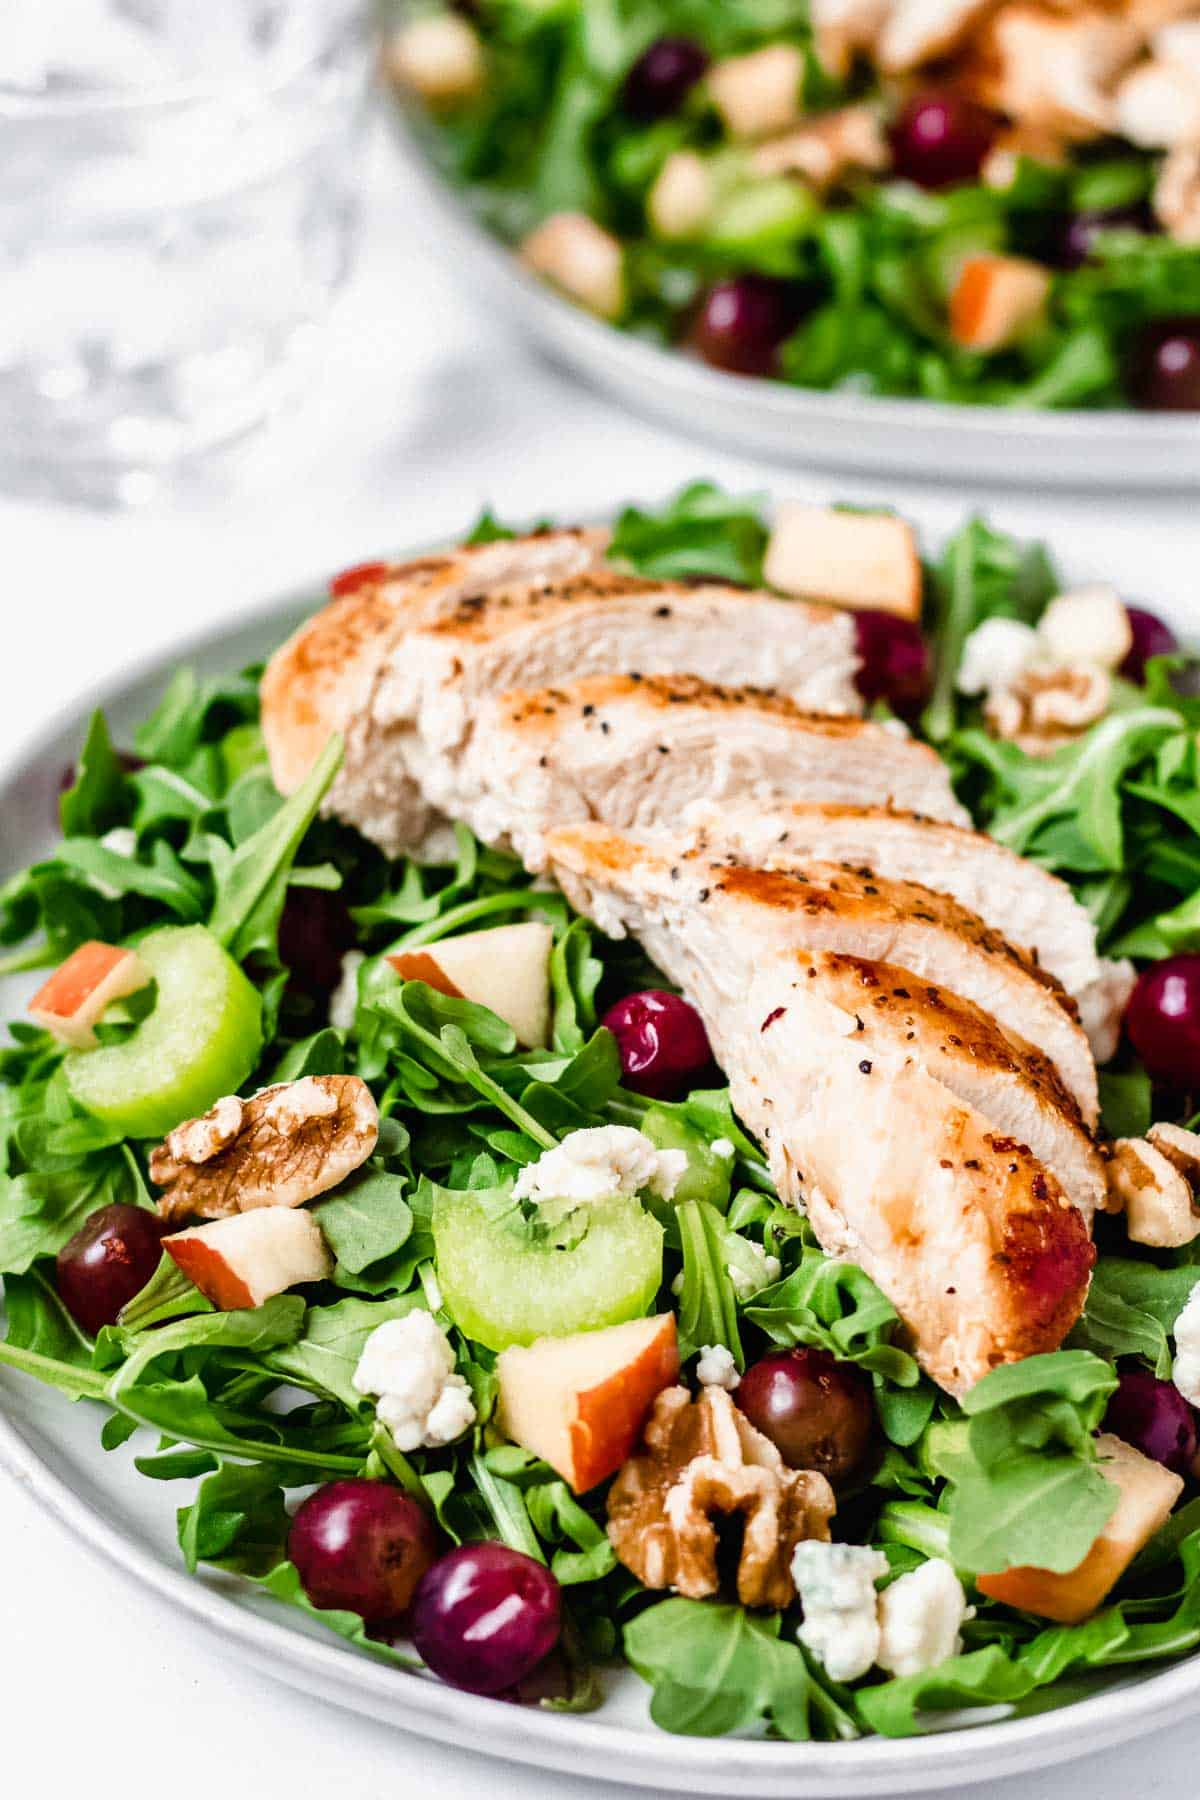 Waldorf salad with grilled chicken on two plates with a glass of water in the background on a white backdrop